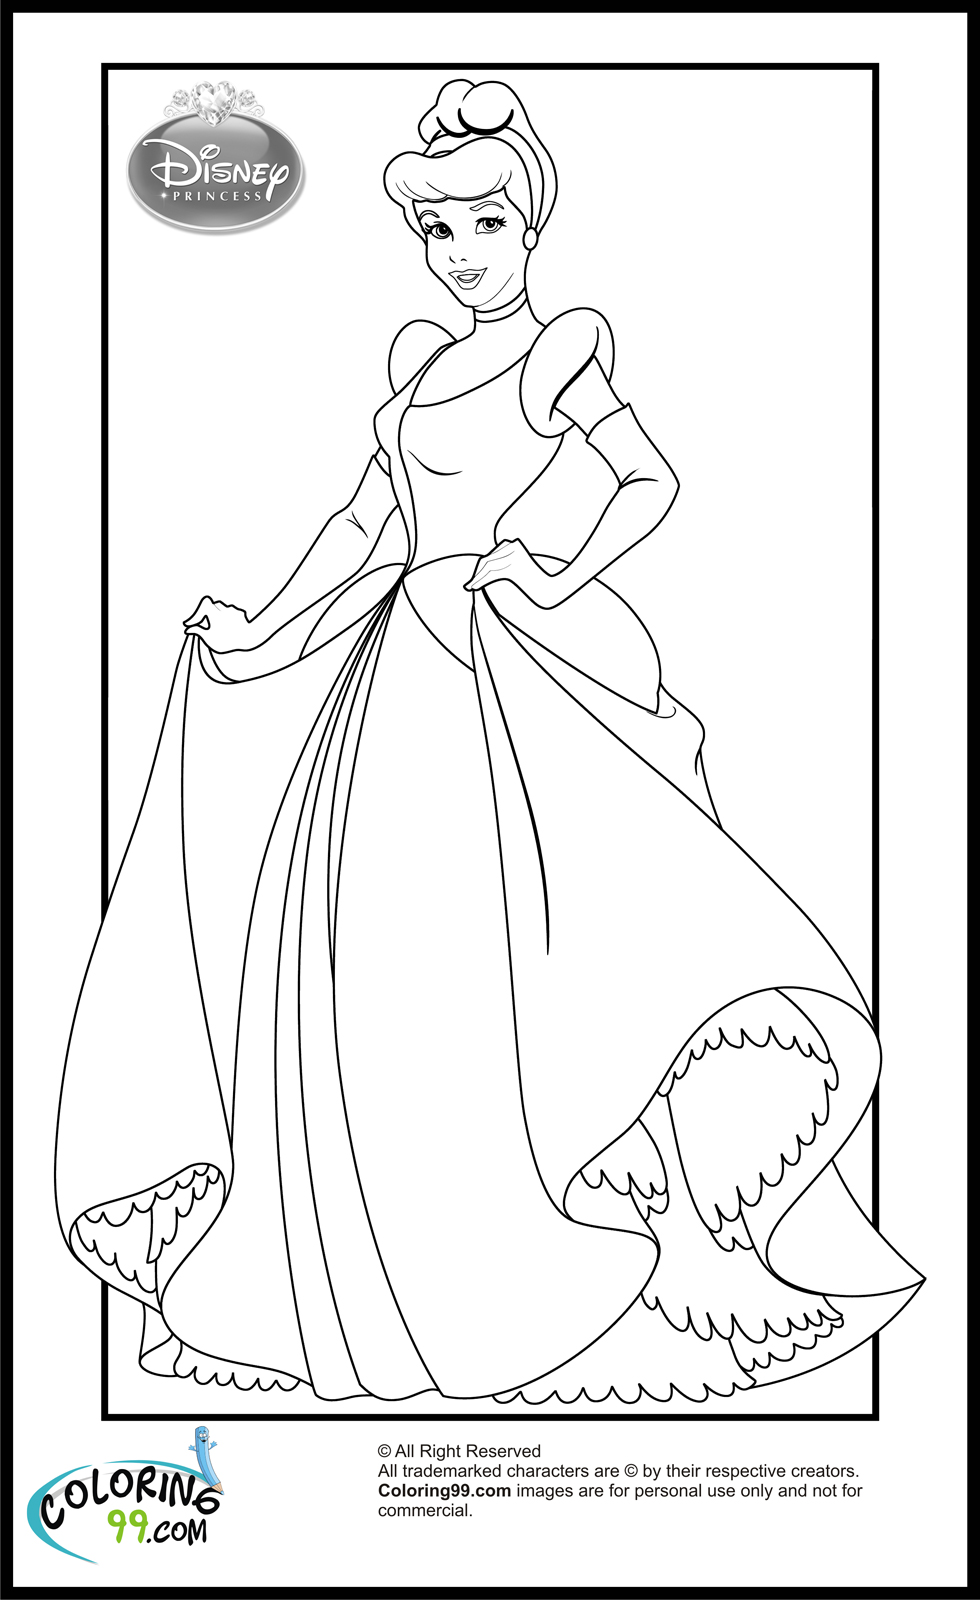 Disney Princess Cinderella Coloring